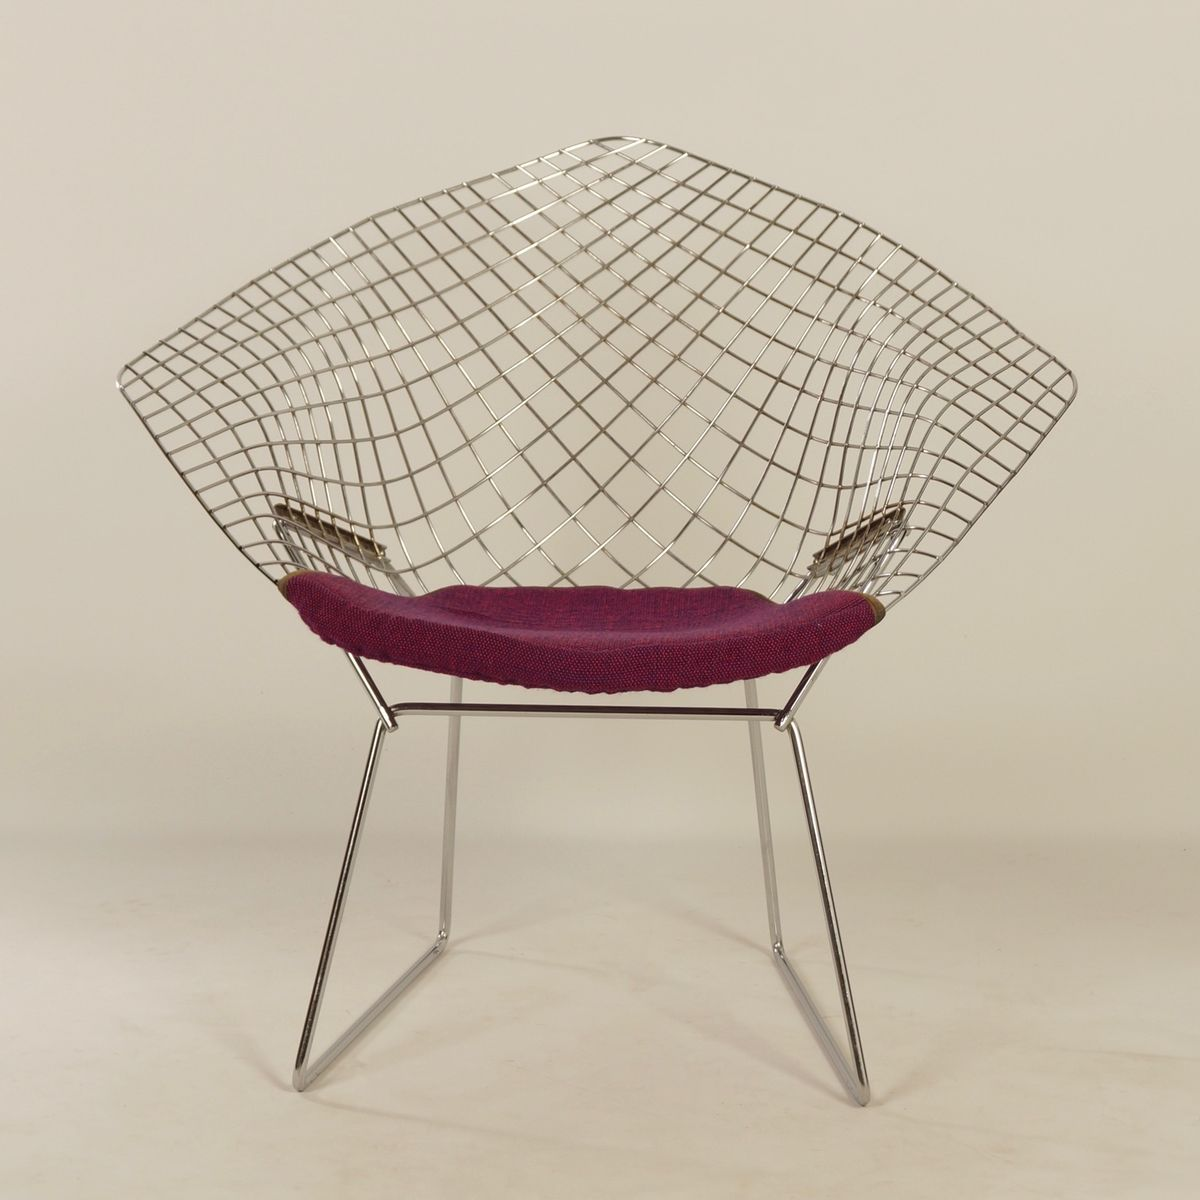 Diamond Sessel Mid Century Diamond Chair Von Harry Bertoia Für Knoll 1950er